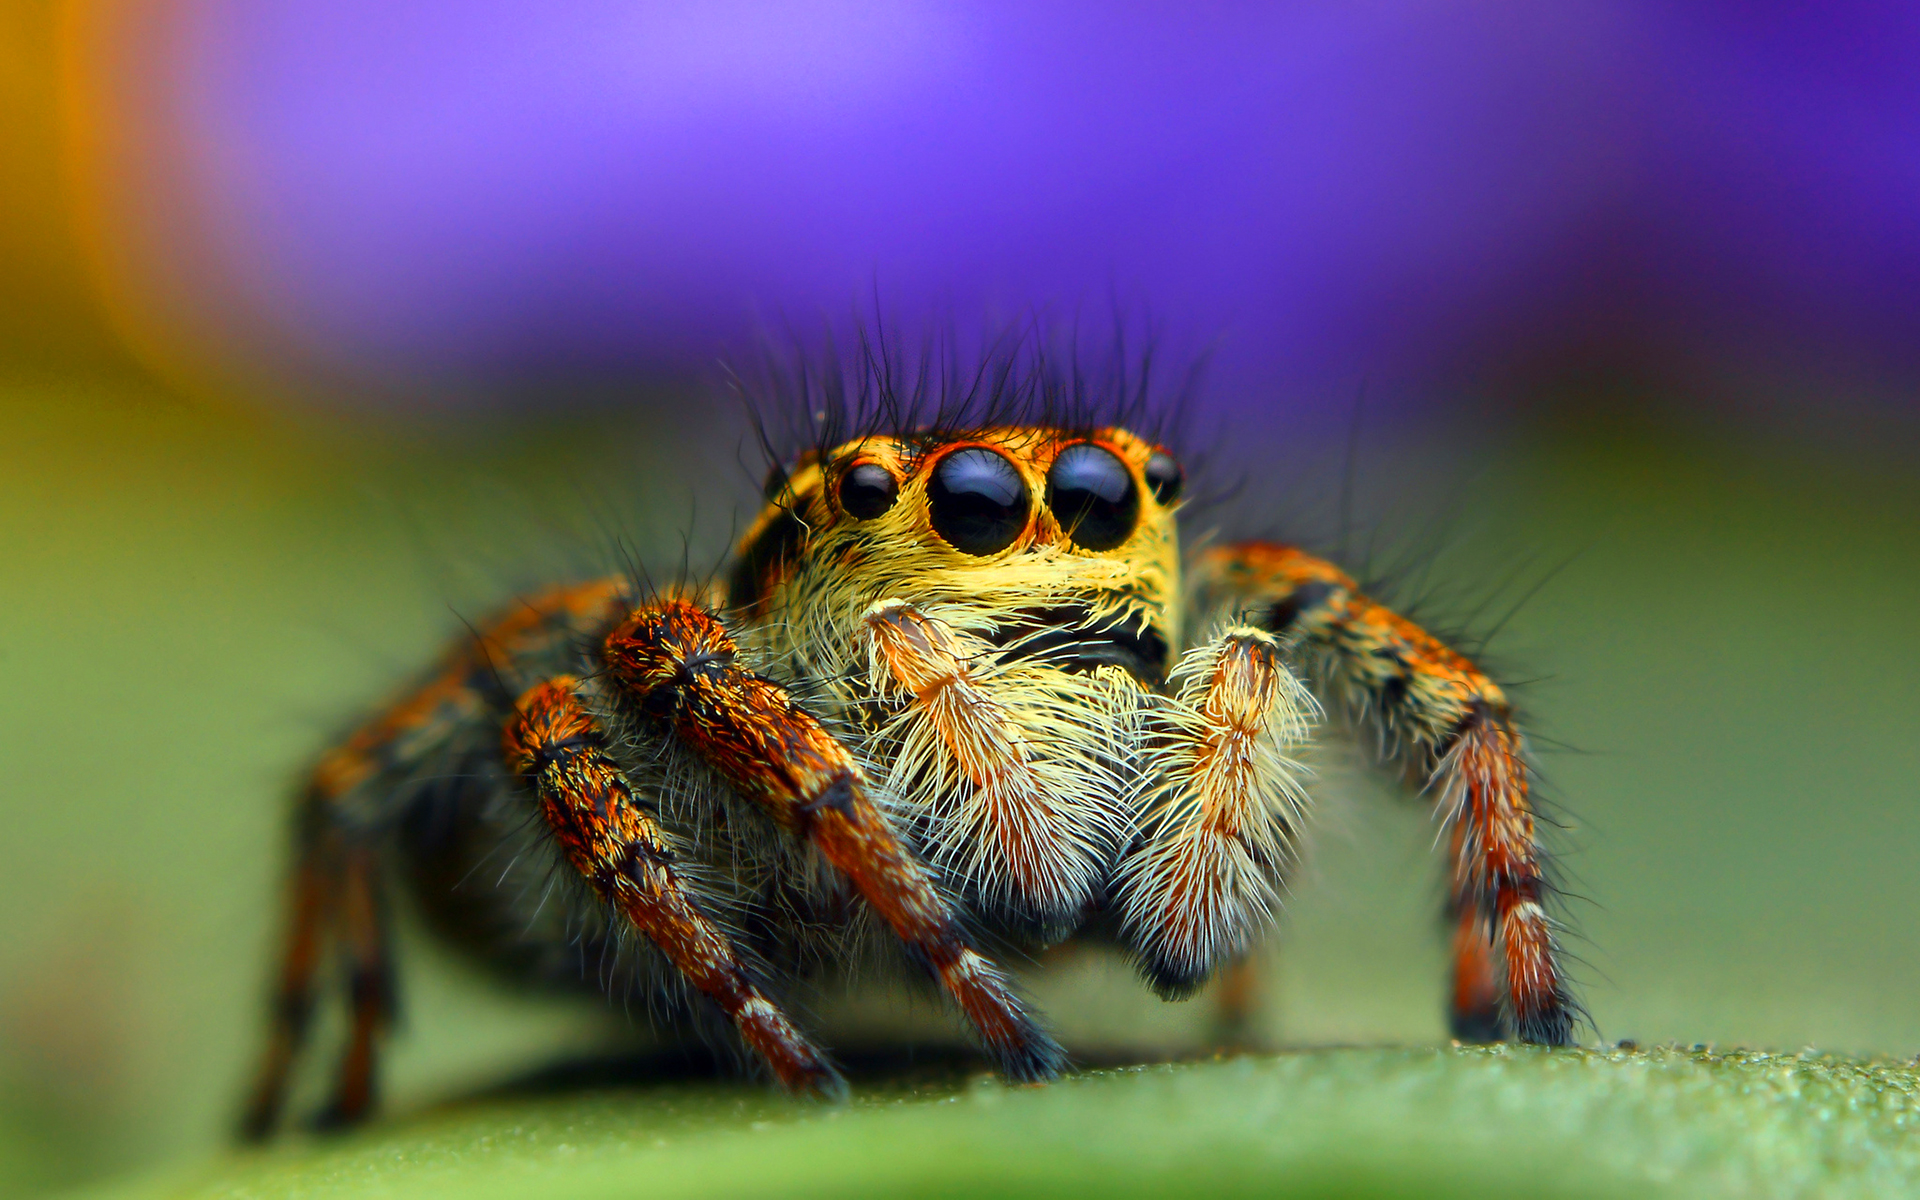 spider wallpapers 1080p